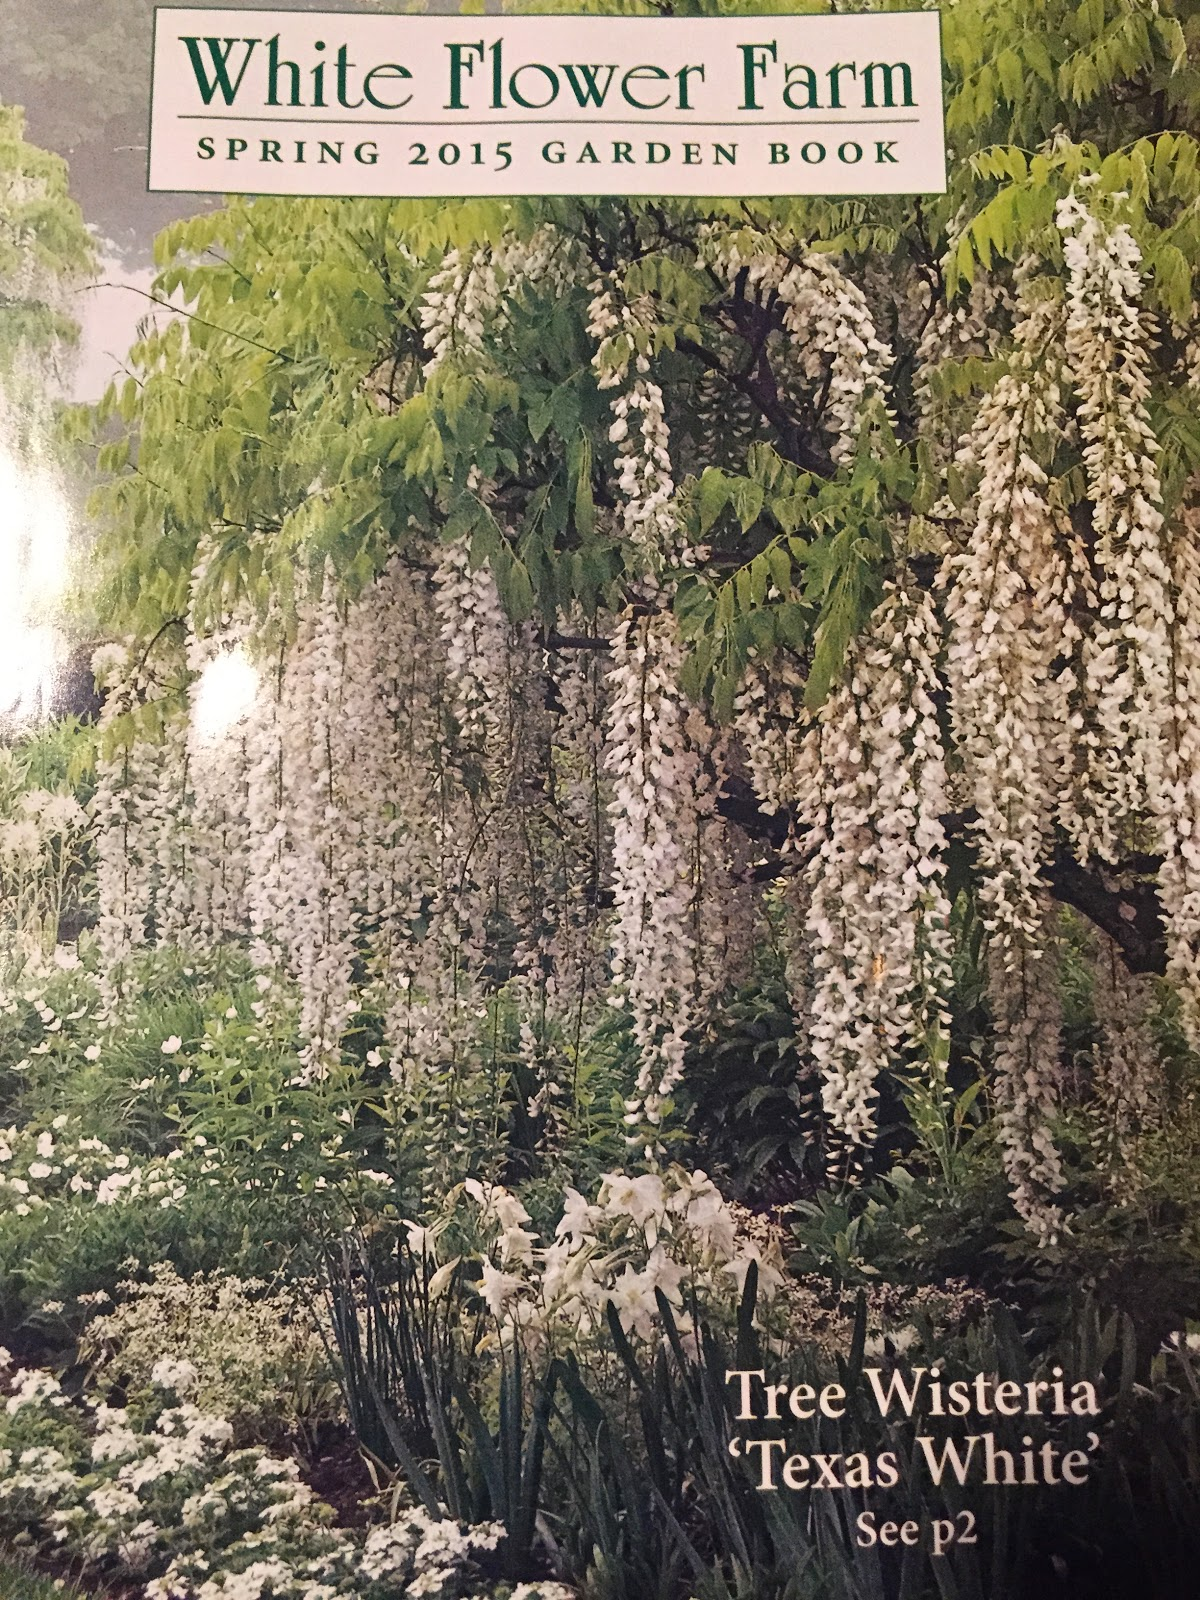 White flower farm catalog gallery flower decoration ideas bunny haven manor january 2015 one of the main sources of my covetous material longing the mightylinksfo